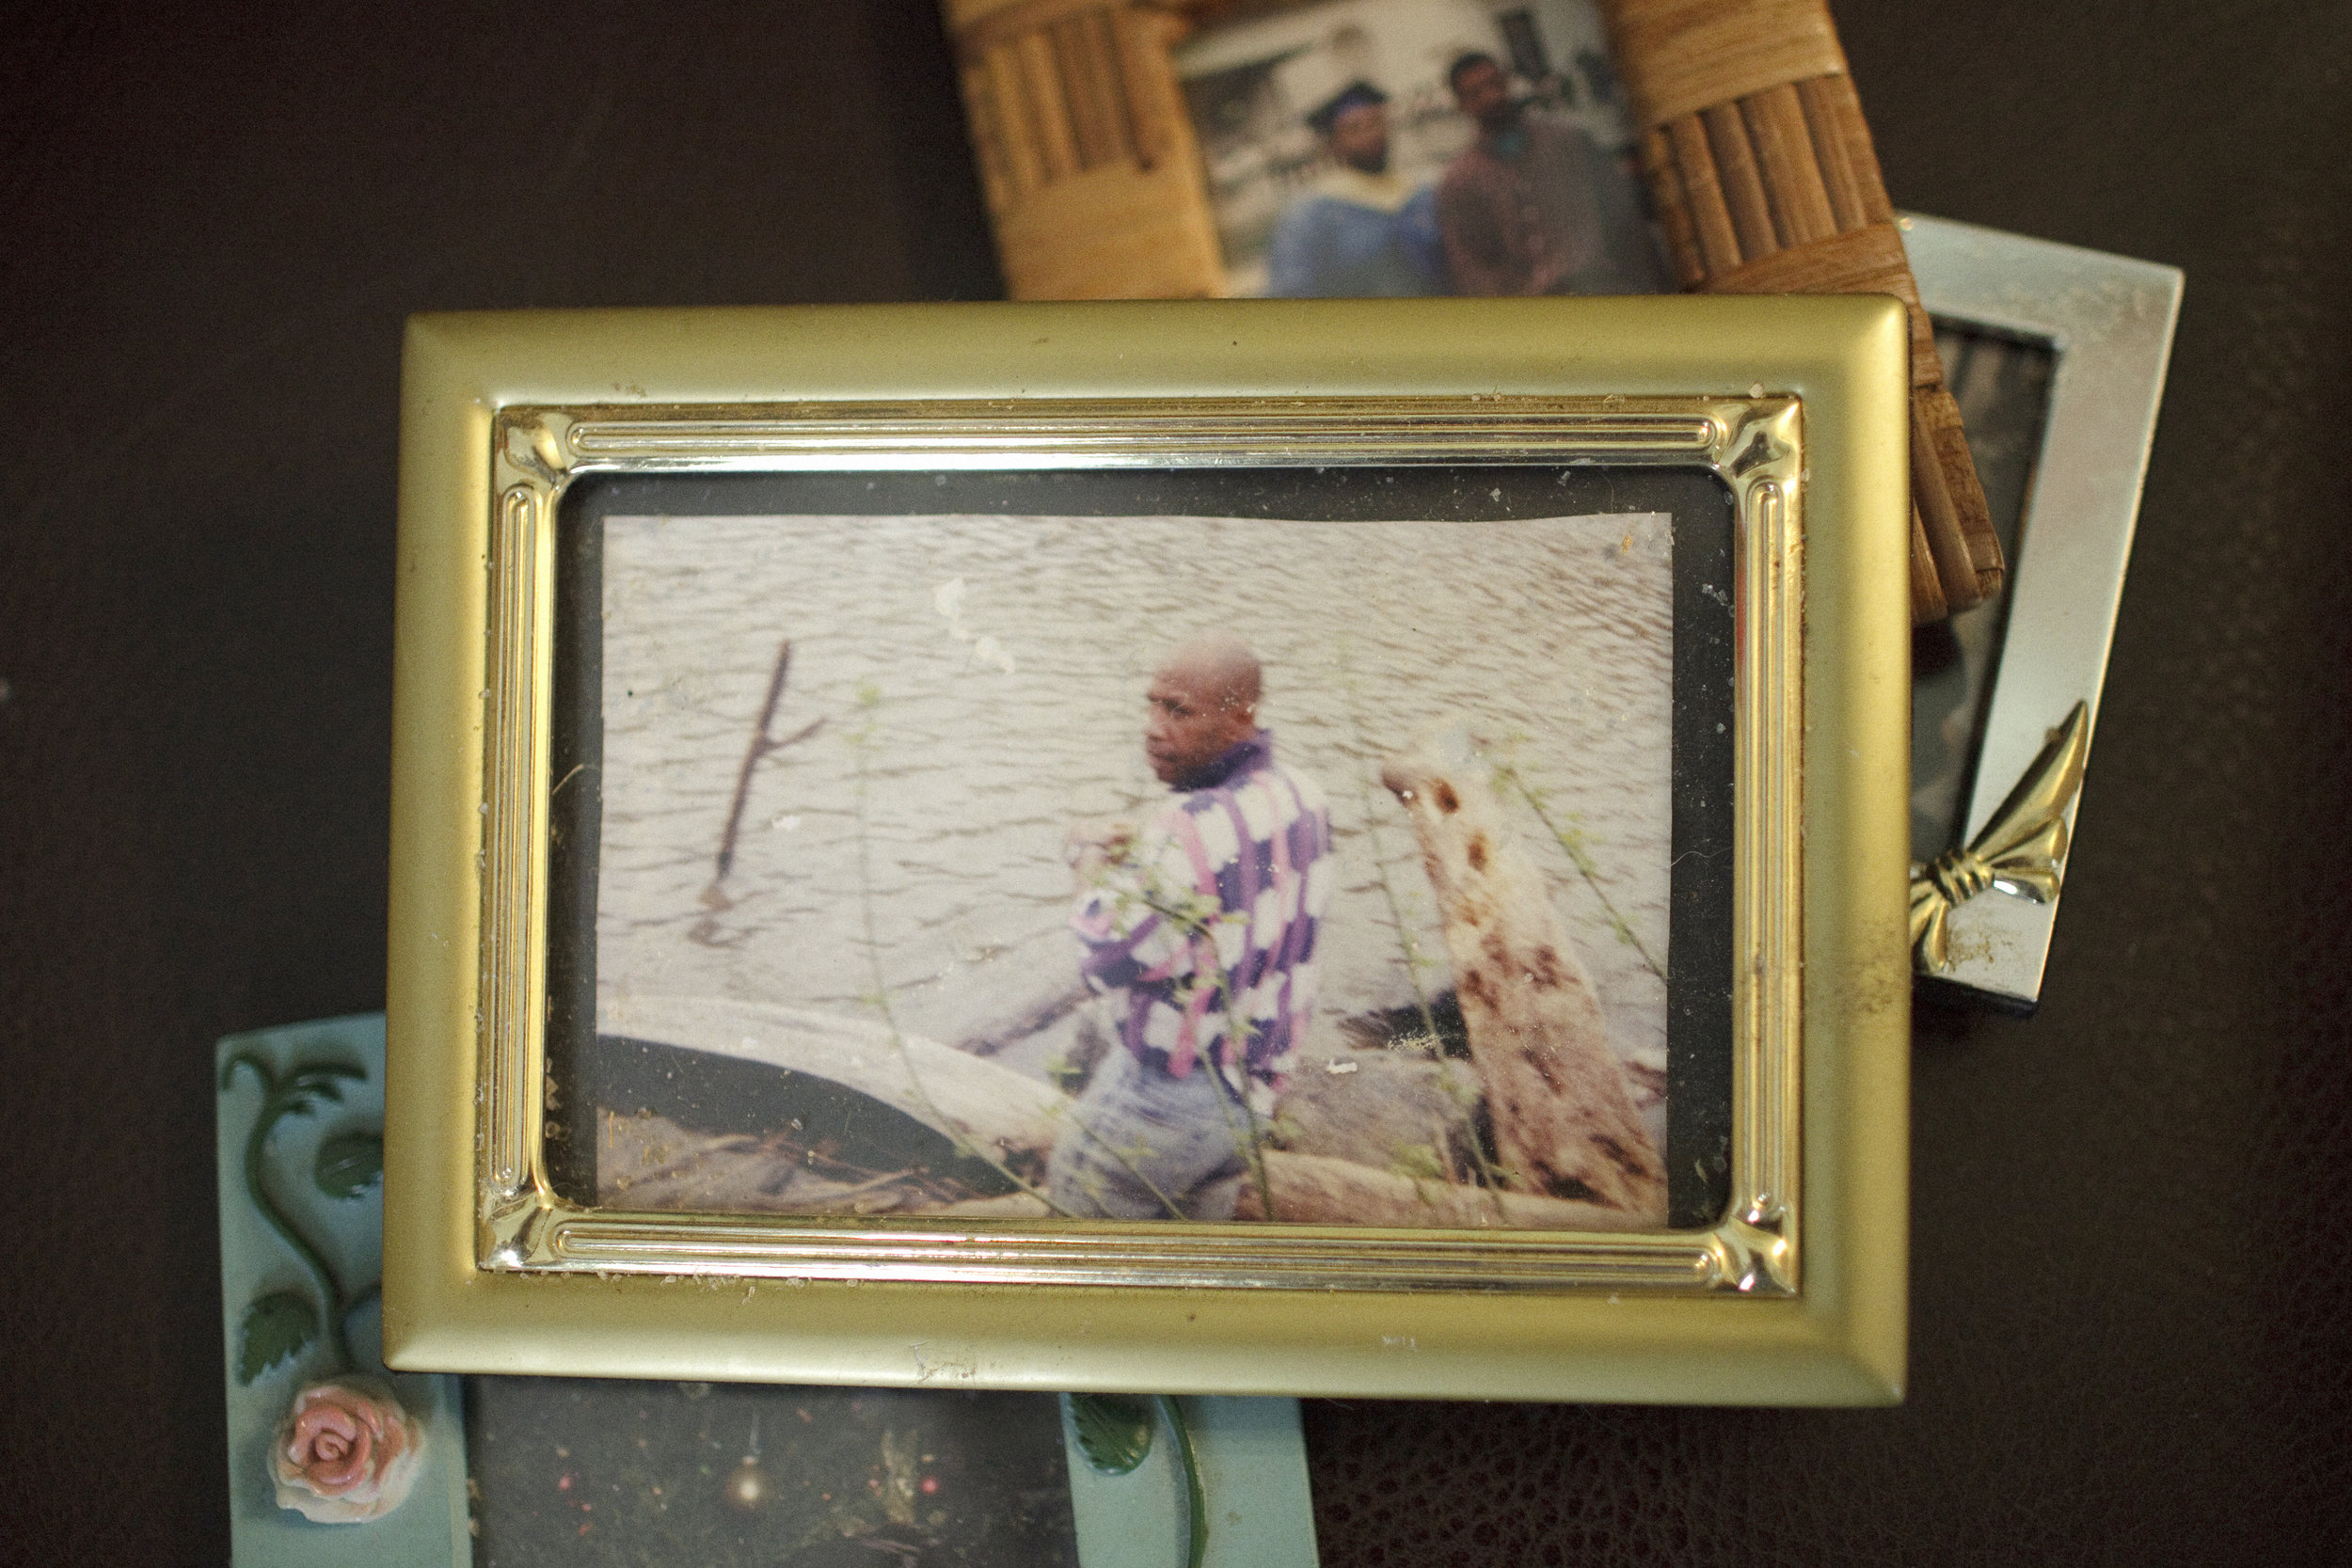 A framed photo of Kojak at the river, taken years earlier. For many, fishing at the river has been a part of their lives for decades.